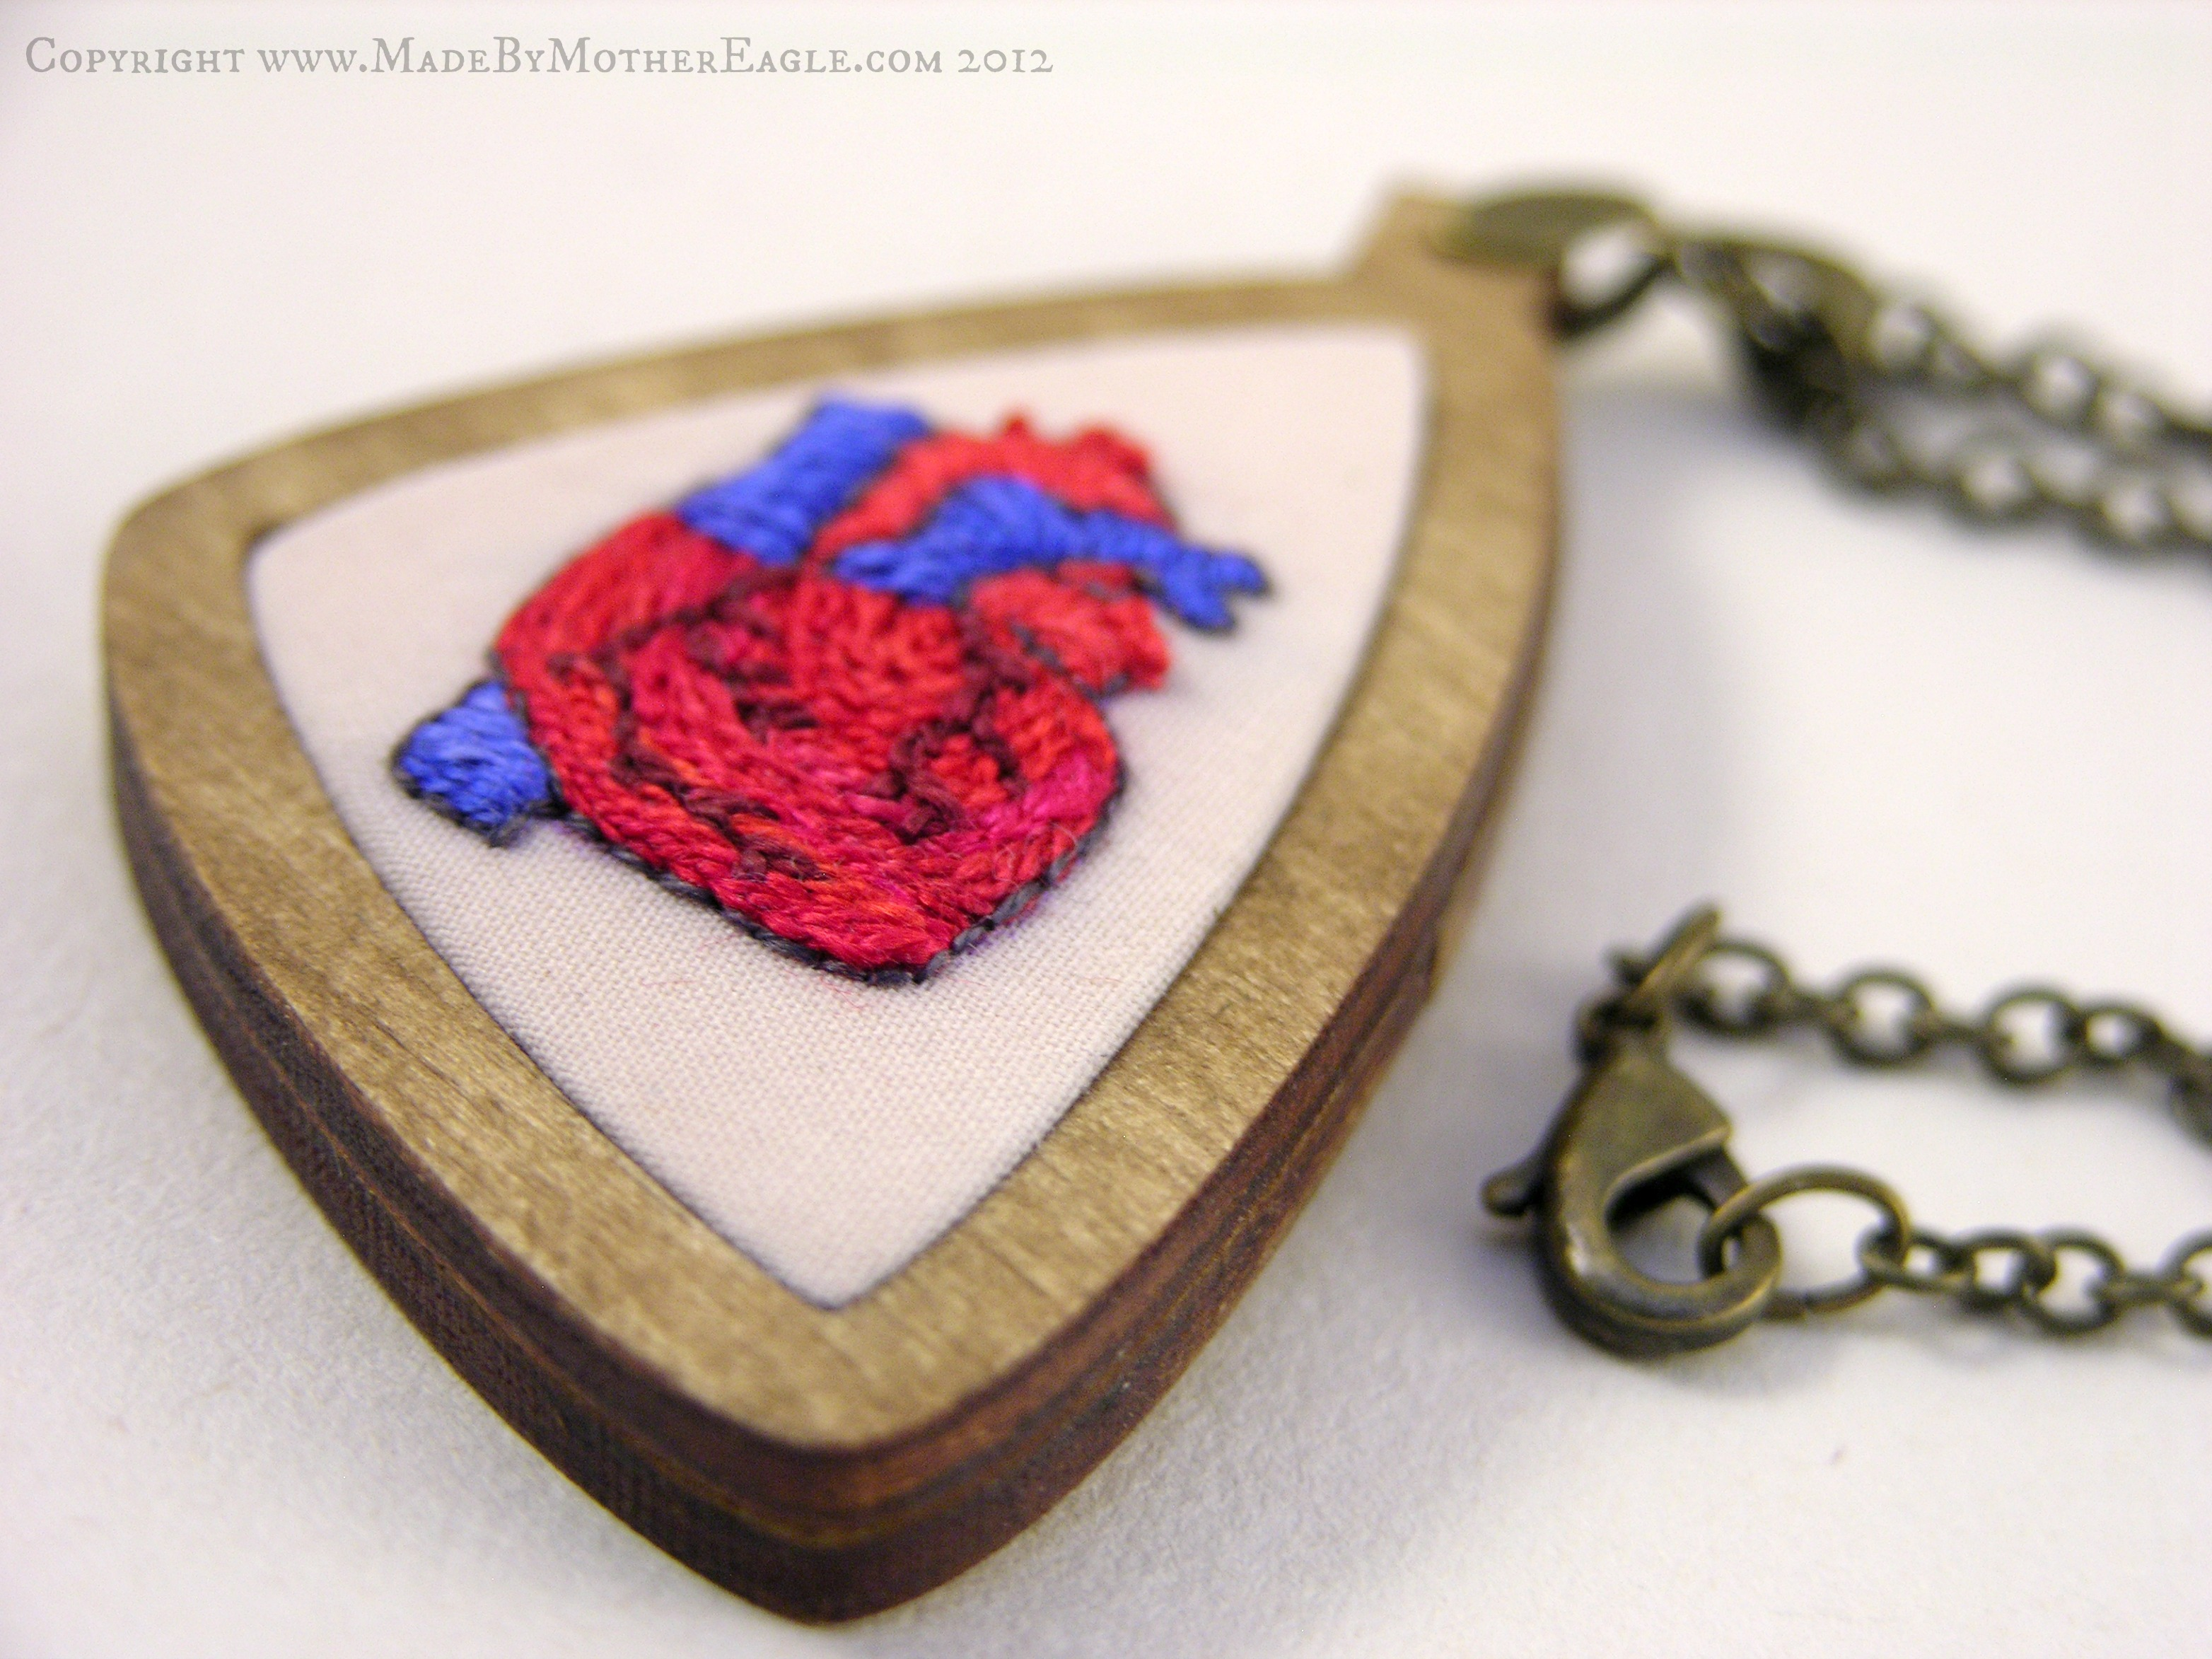 Red and Blue anatomically correct embroidered heart pendant